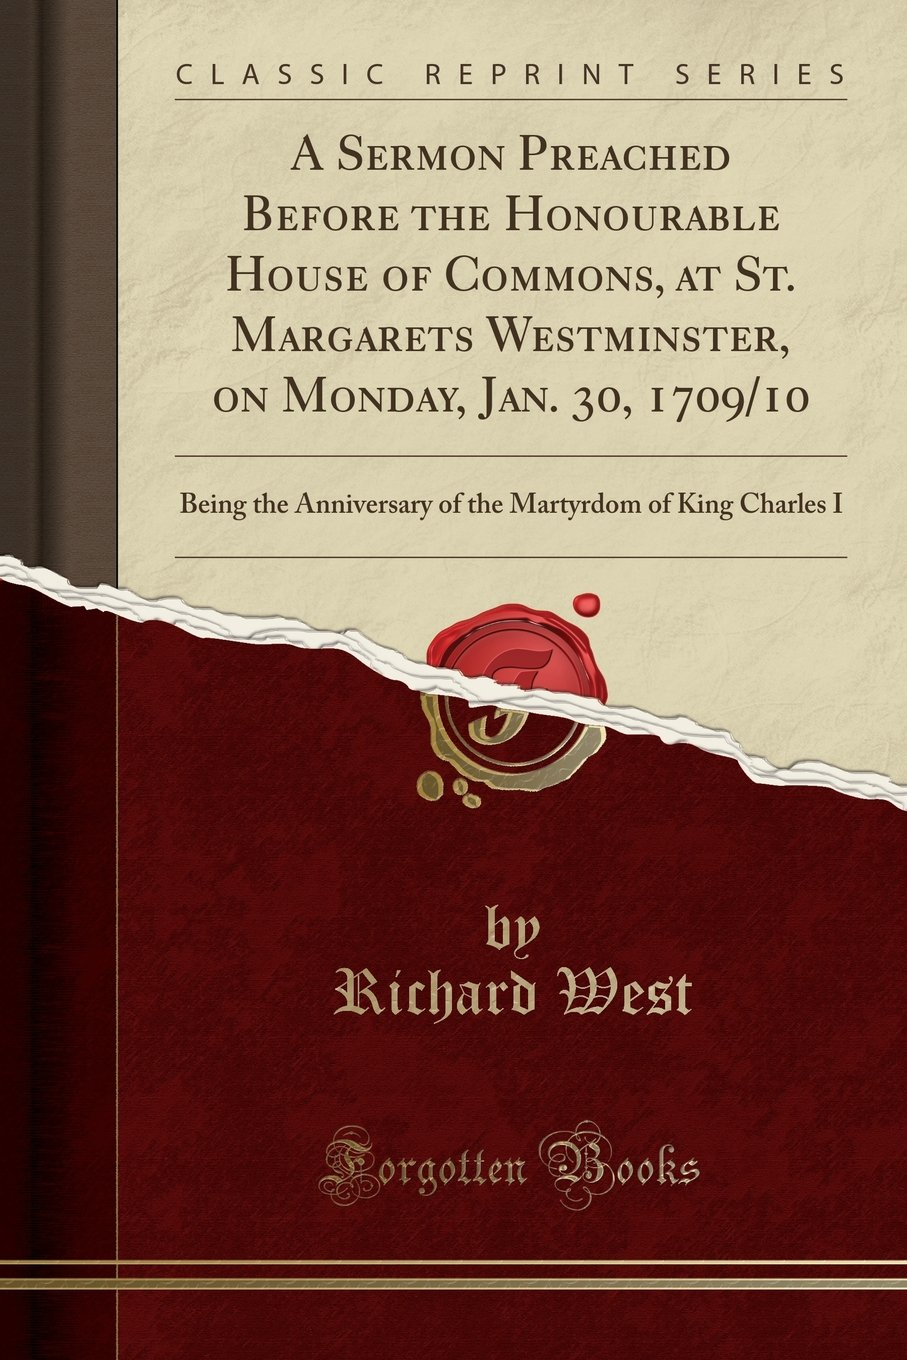 A Sermon Preached Before the Honourable House of Commons, at St. Margarets Westminster, on Monday, Jan. 30, 1709/10: Being the Anniversary of the Martyrdom of King Charles I (Classic Reprint) Text fb2 book